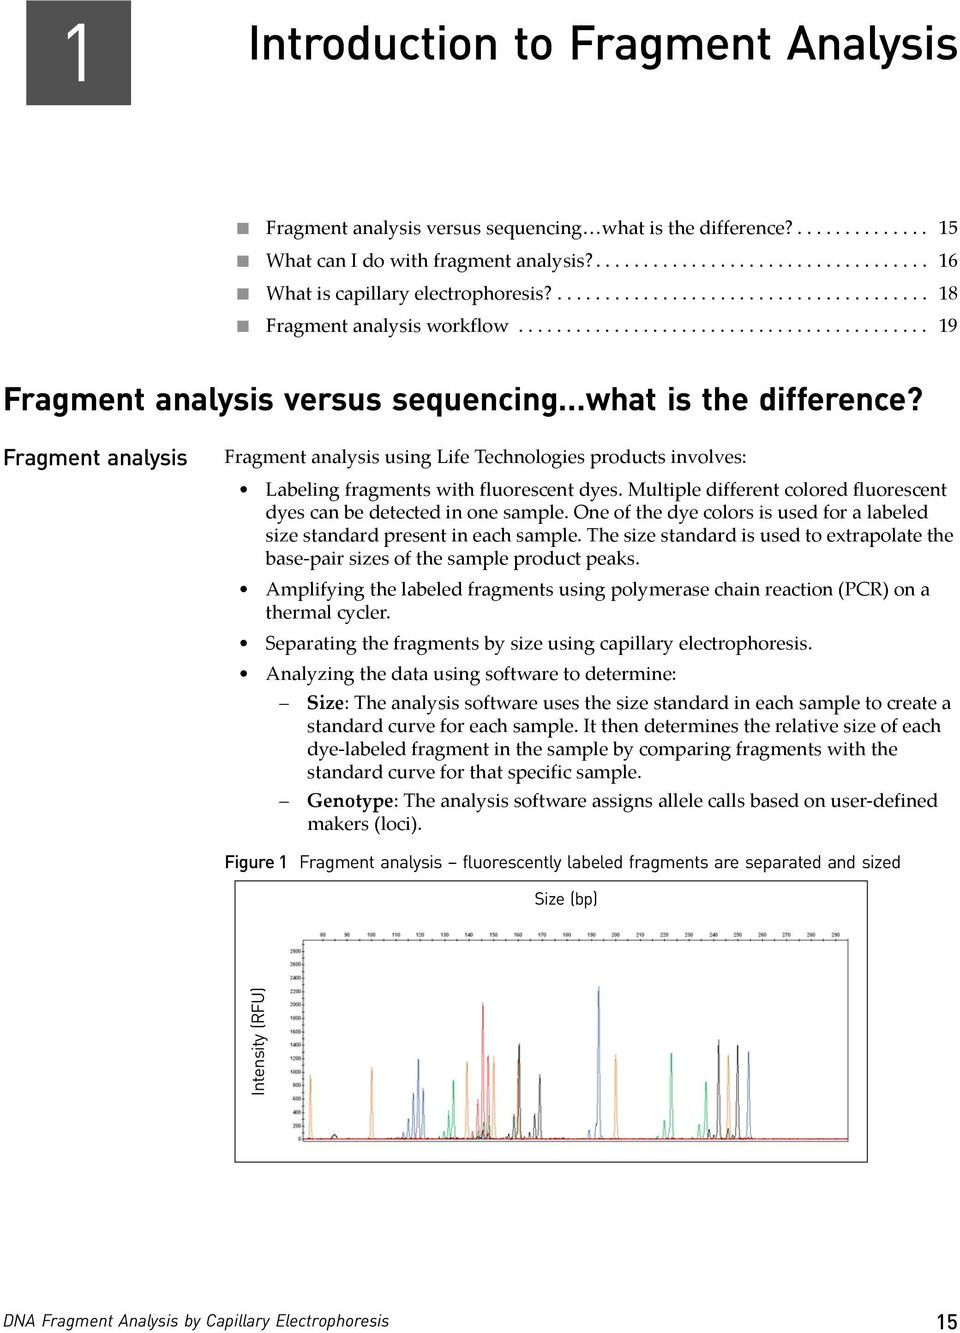 Fragment analysis Fragment analysis using Life Technologies products involves: Labeling fragments with fluorescent dyes. Multiple different colored fluorescent dyes can be detected in one sample.